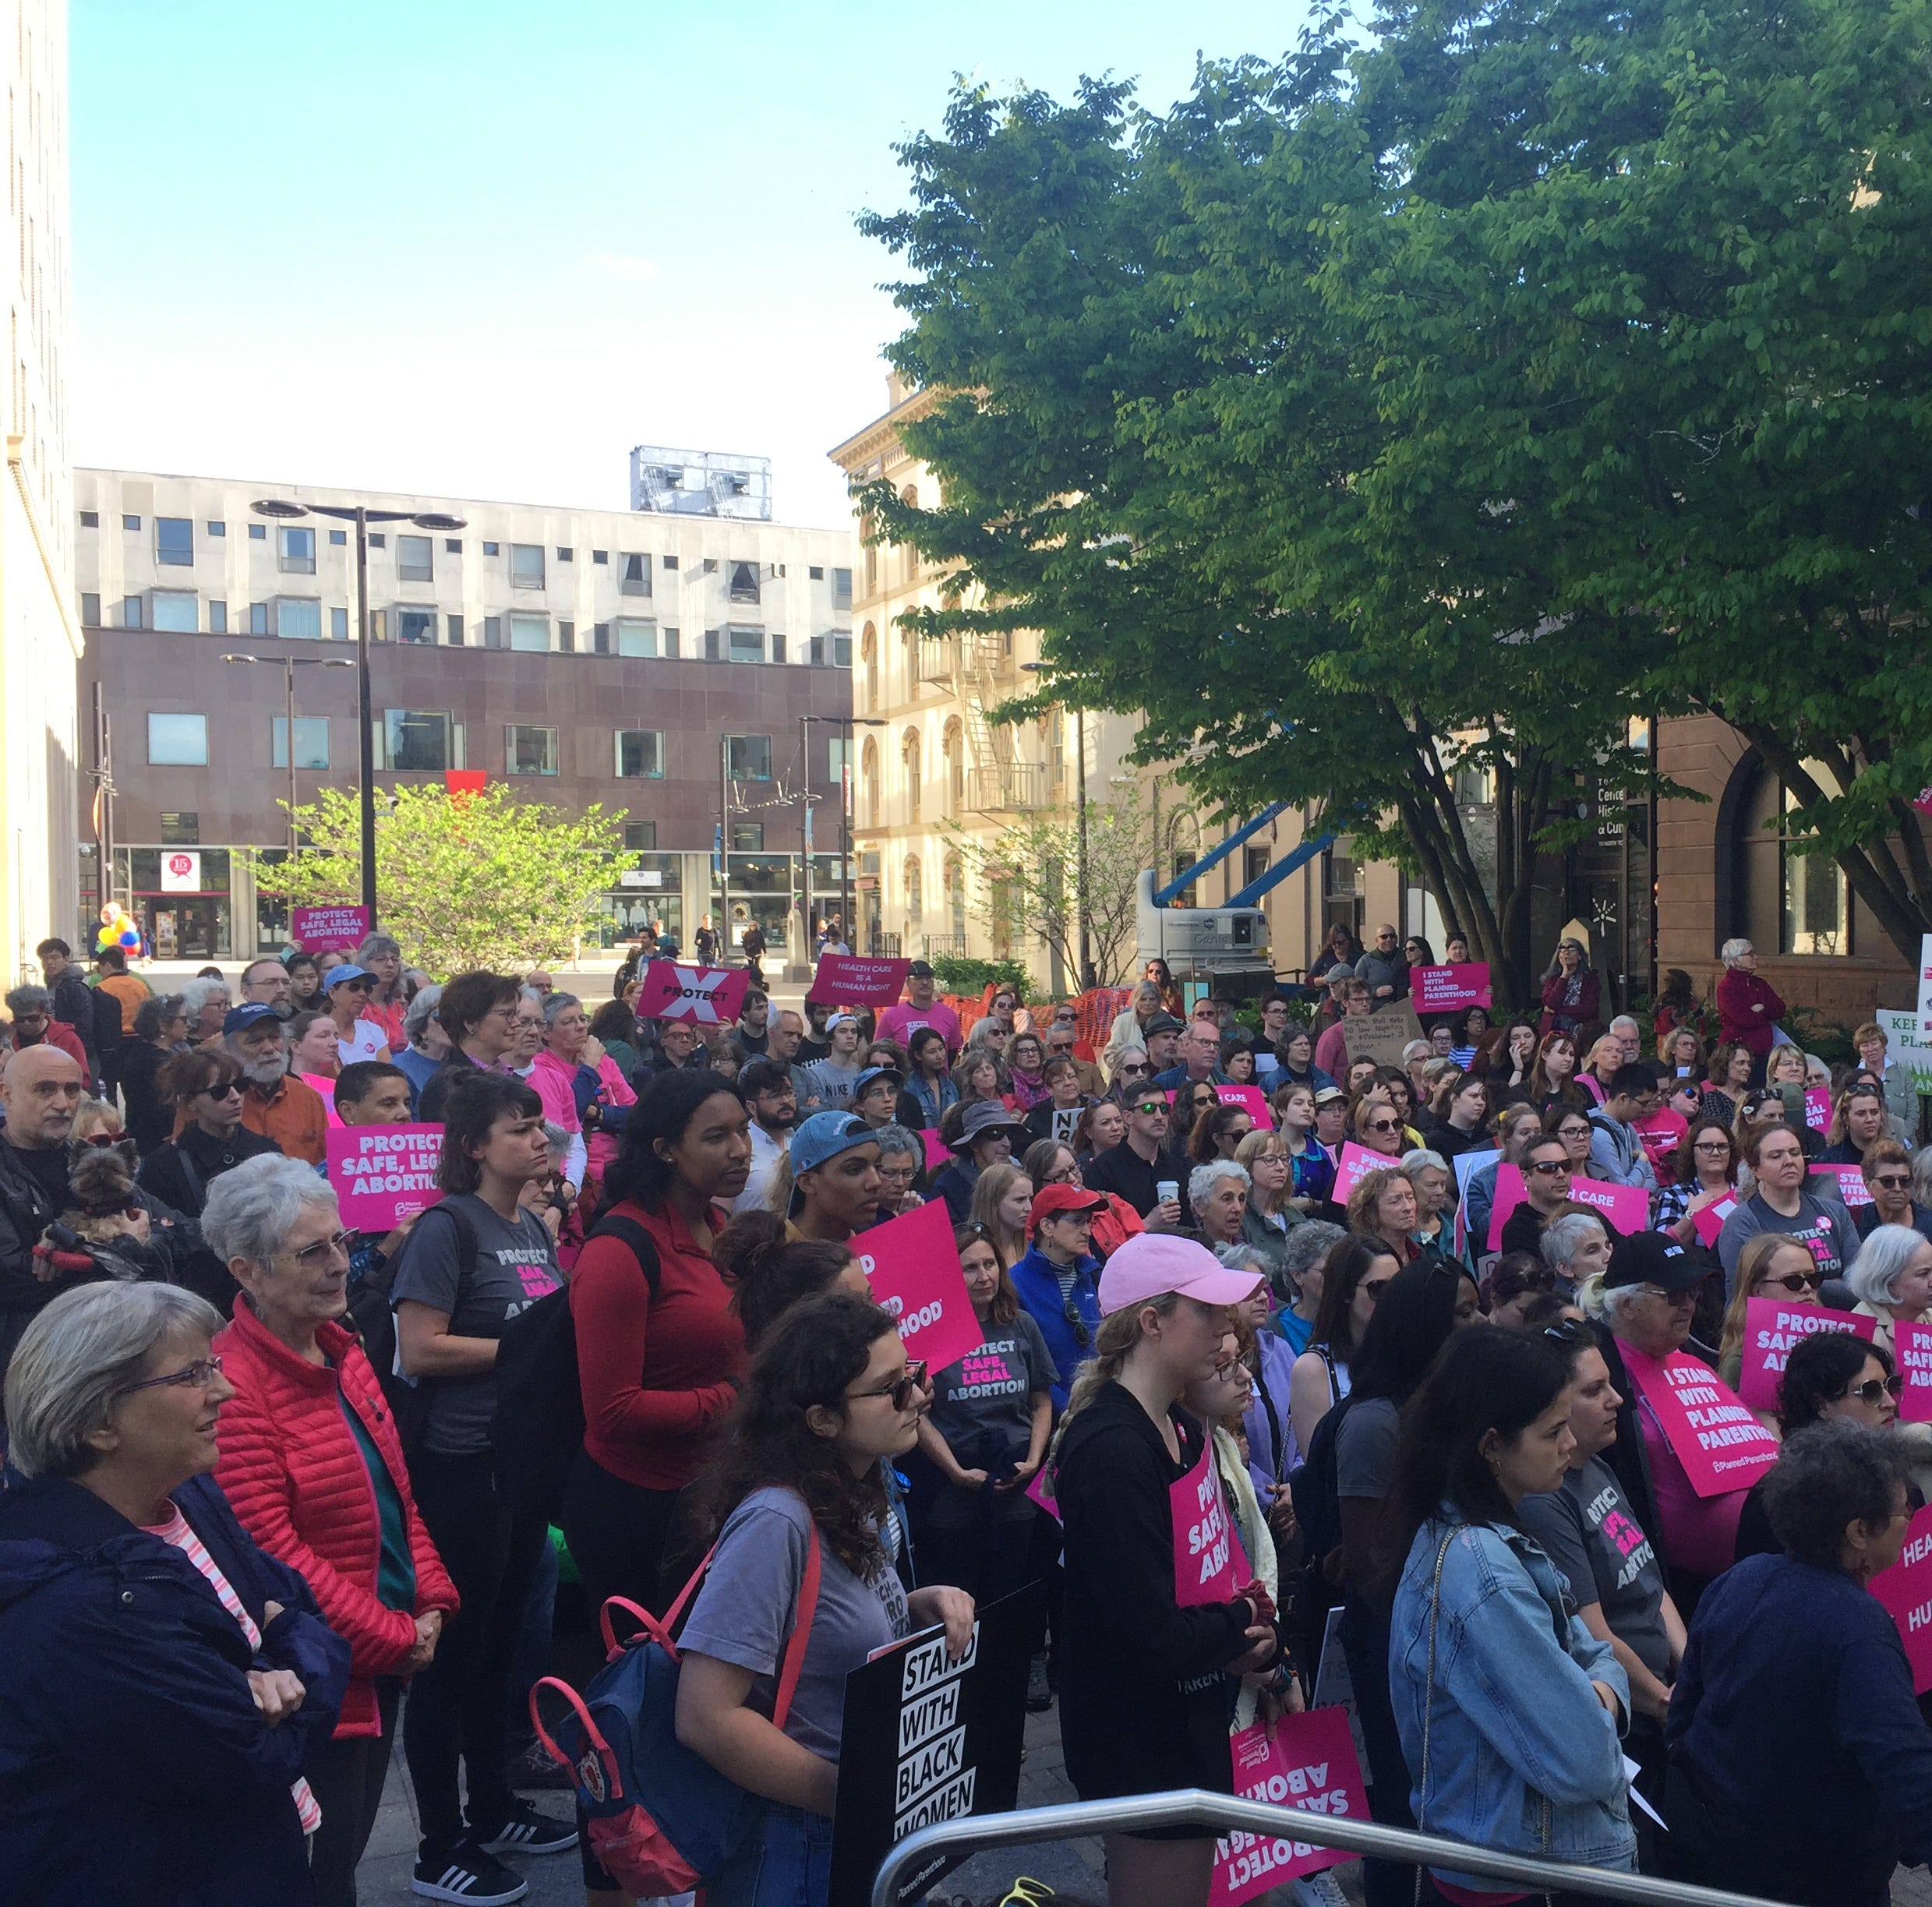 The pink-clad crowd surpassed 100 attendees.